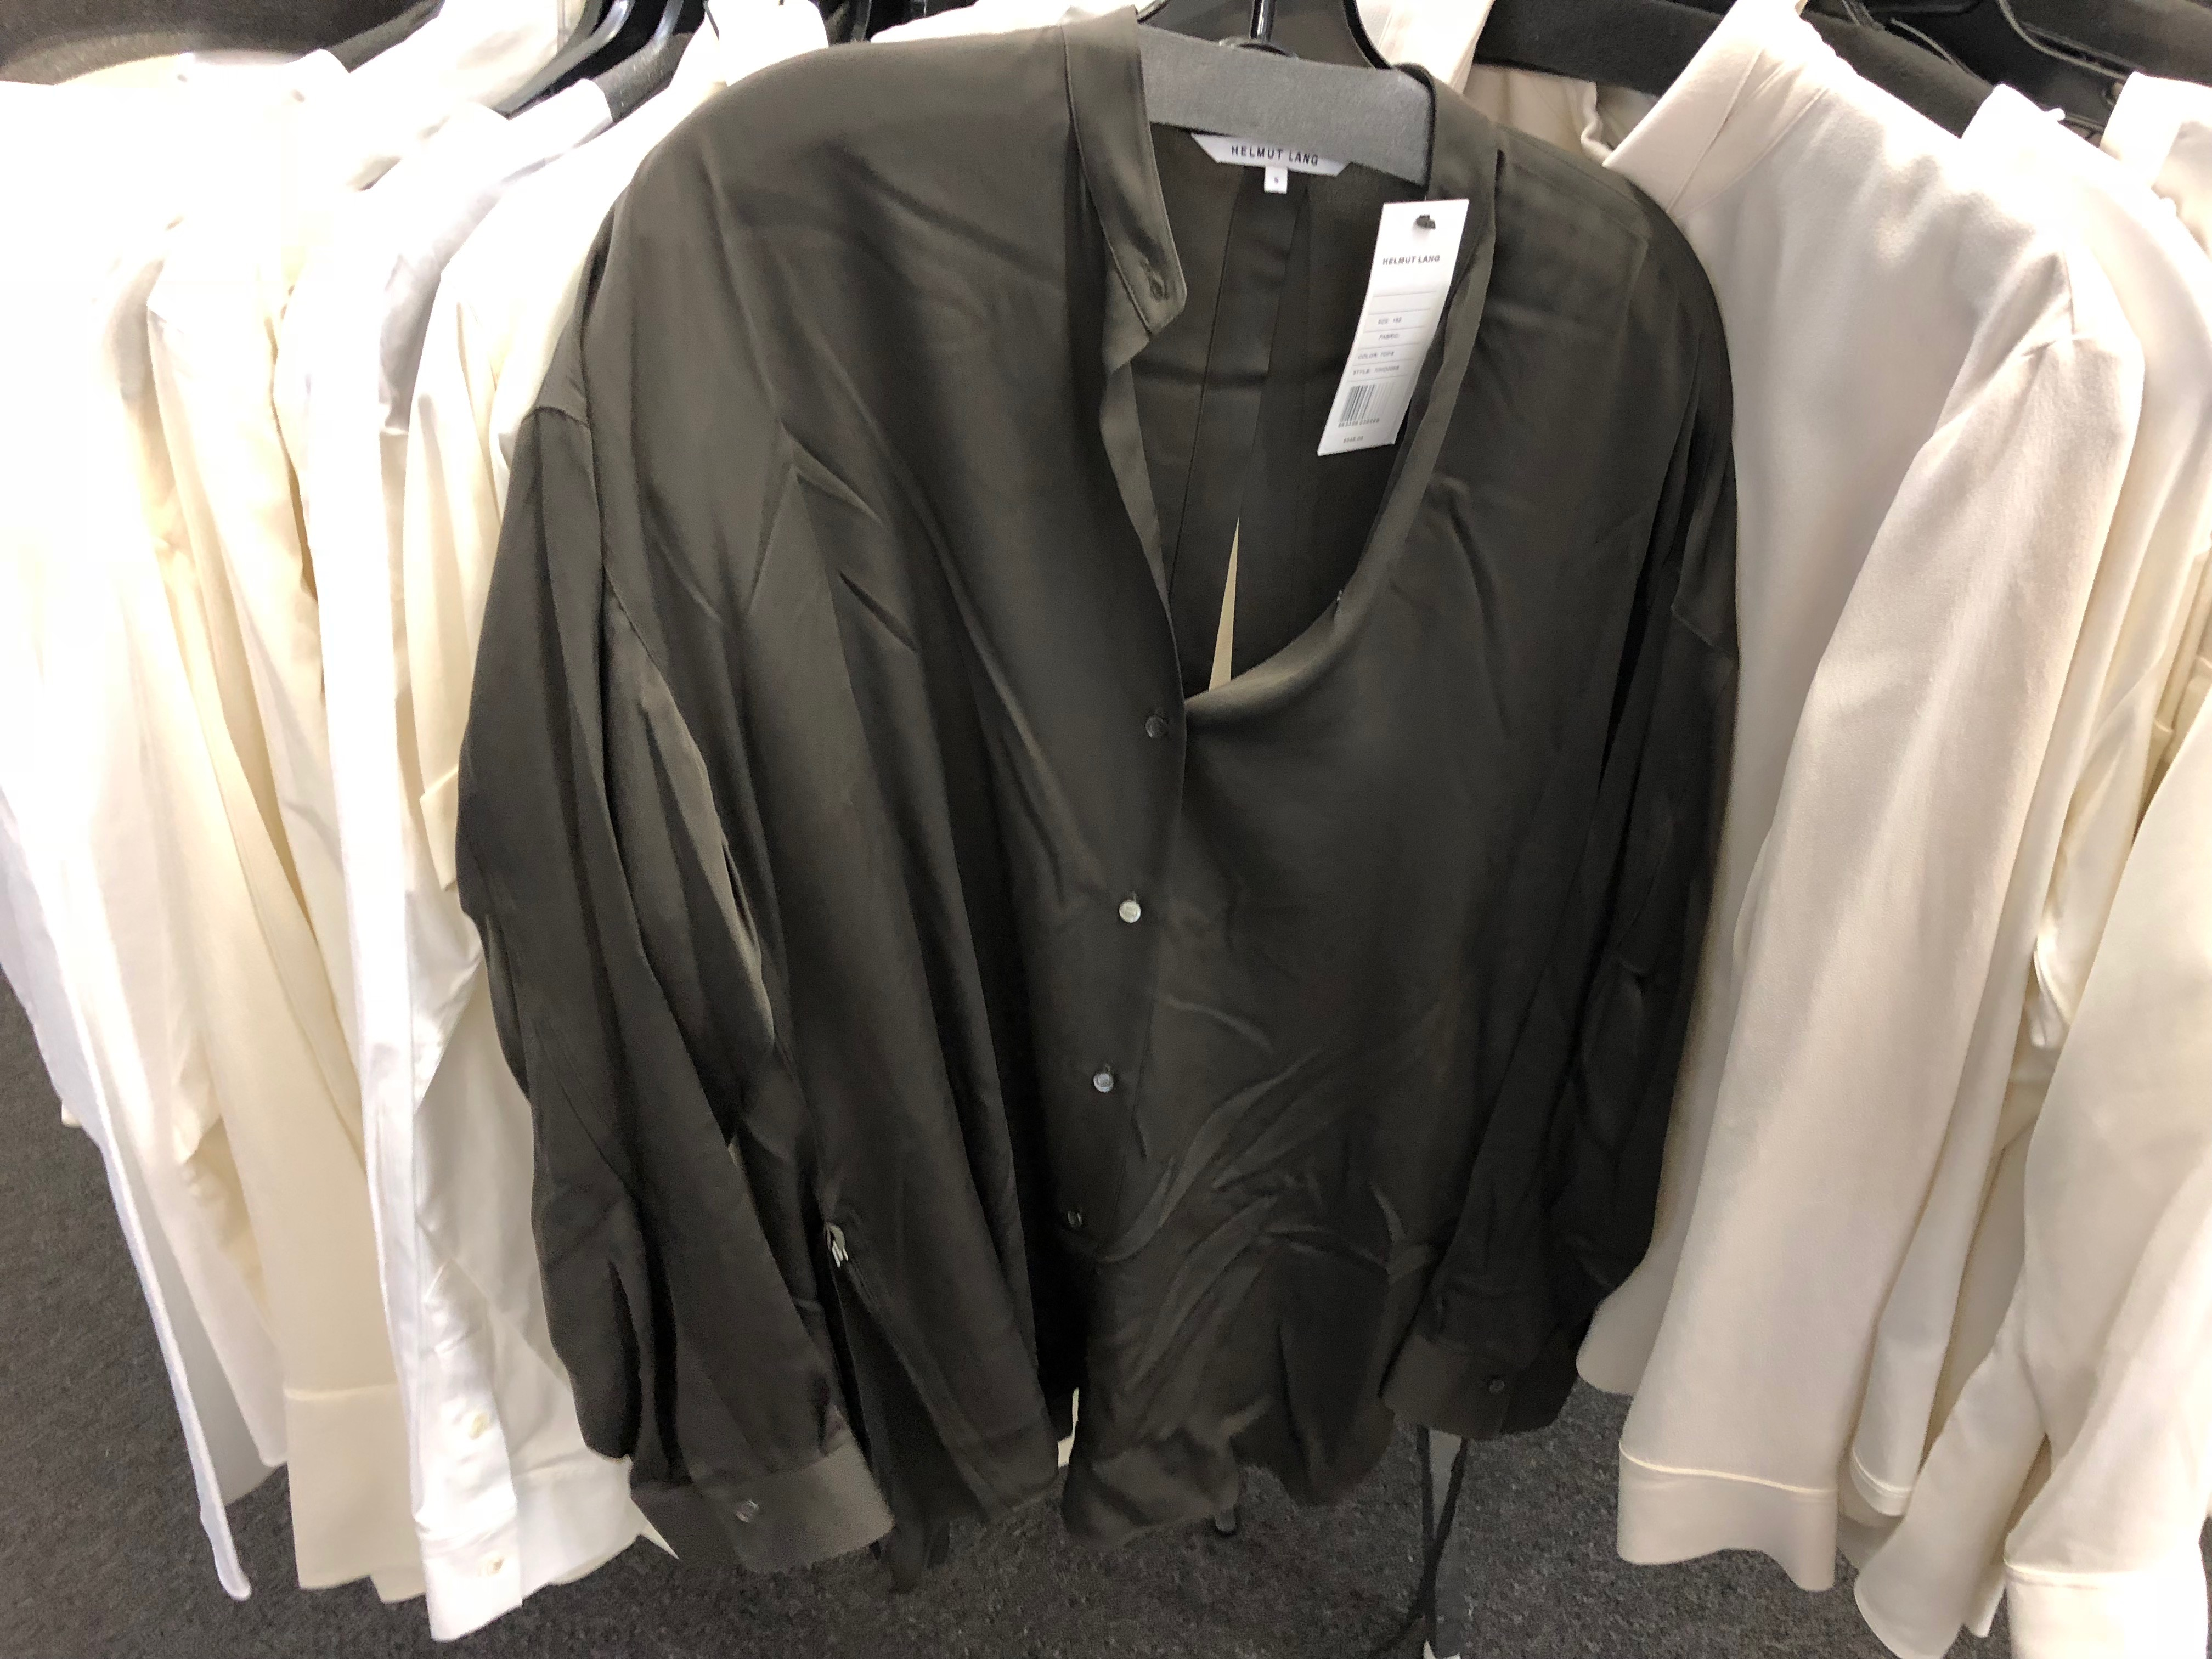 bfdd50046c High Fashion at Affordable Prices | Inside The Theory & Helmut Lang ...